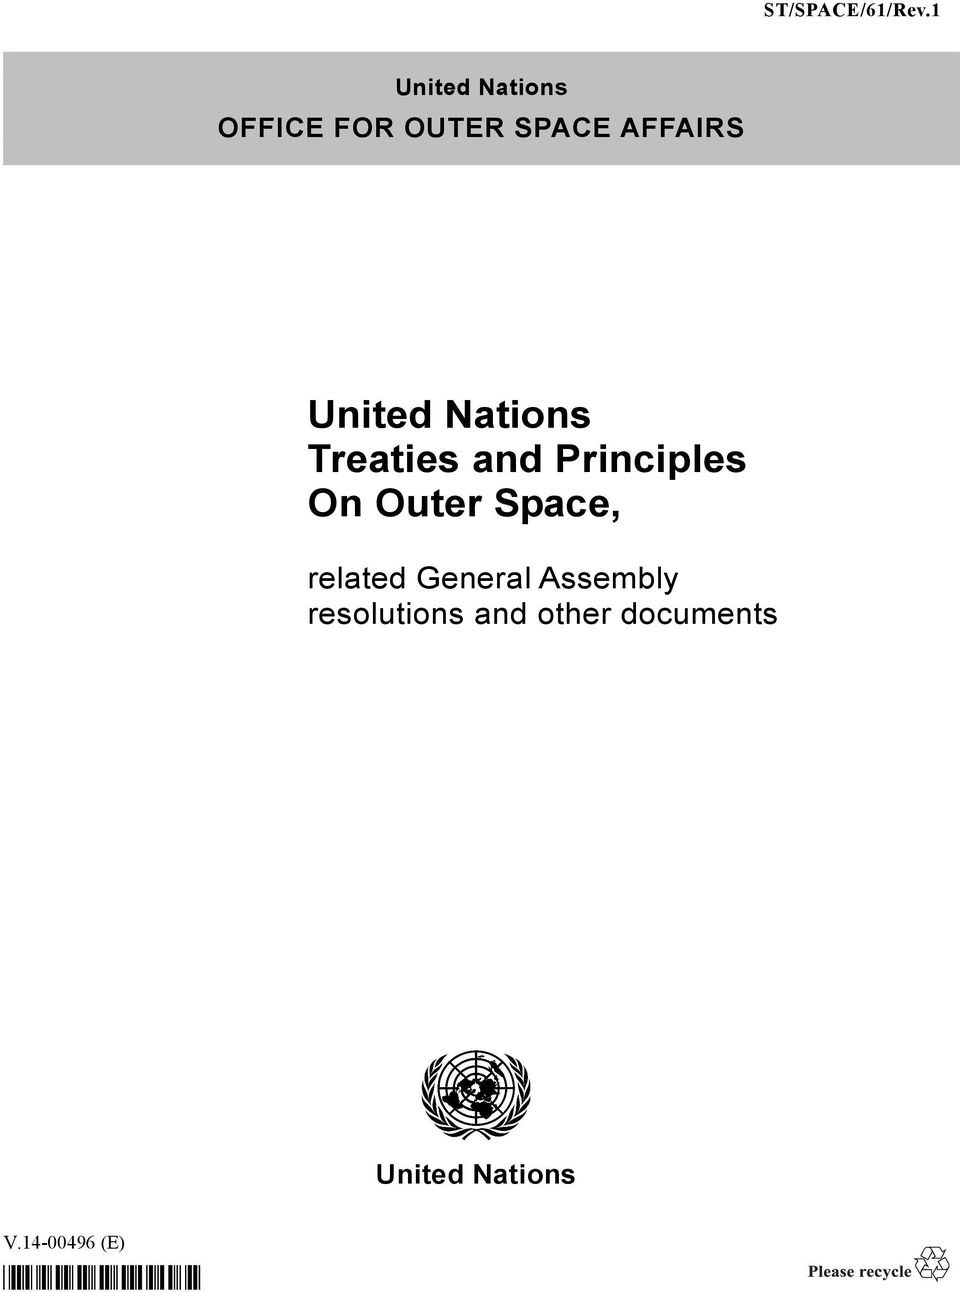 United Nations Treaties and Principles On Outer